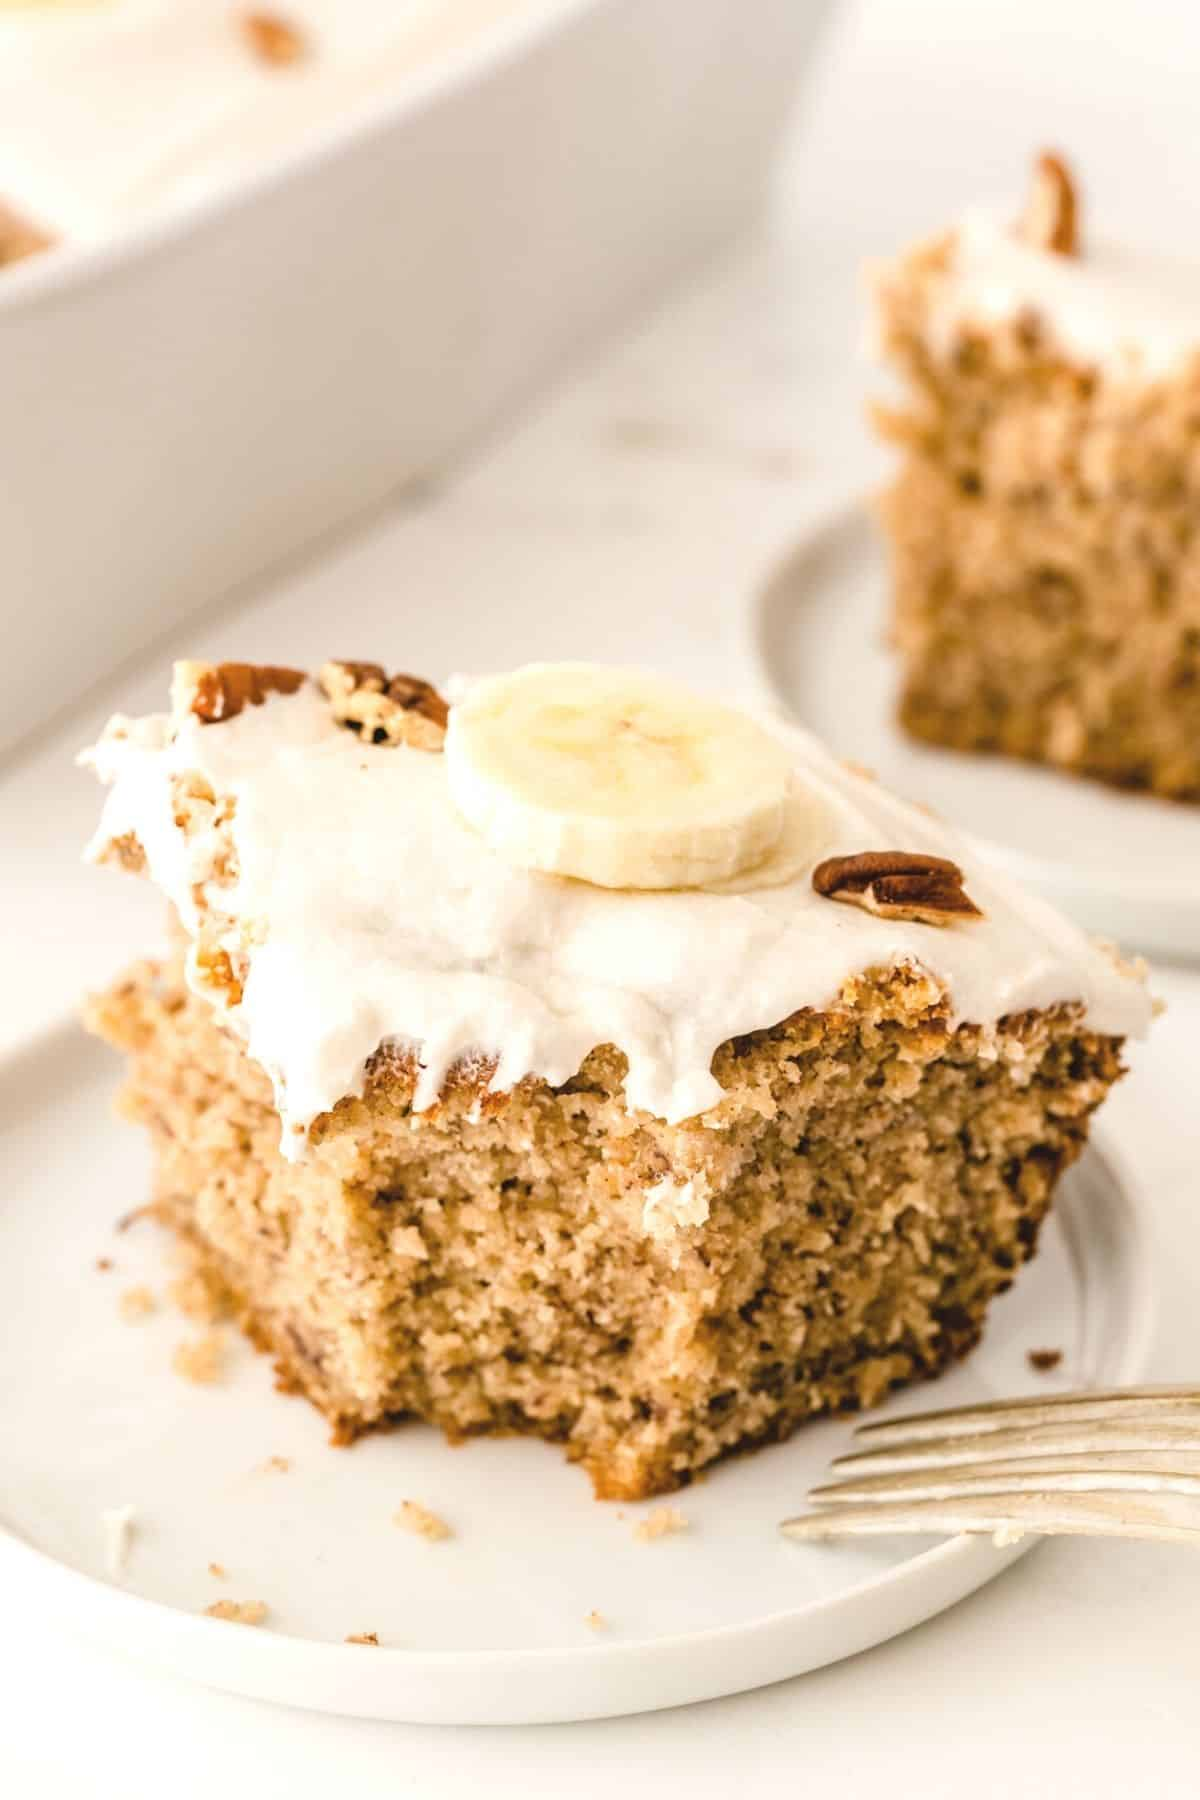 A slice of gluten-free banana cake on a white plate with fork